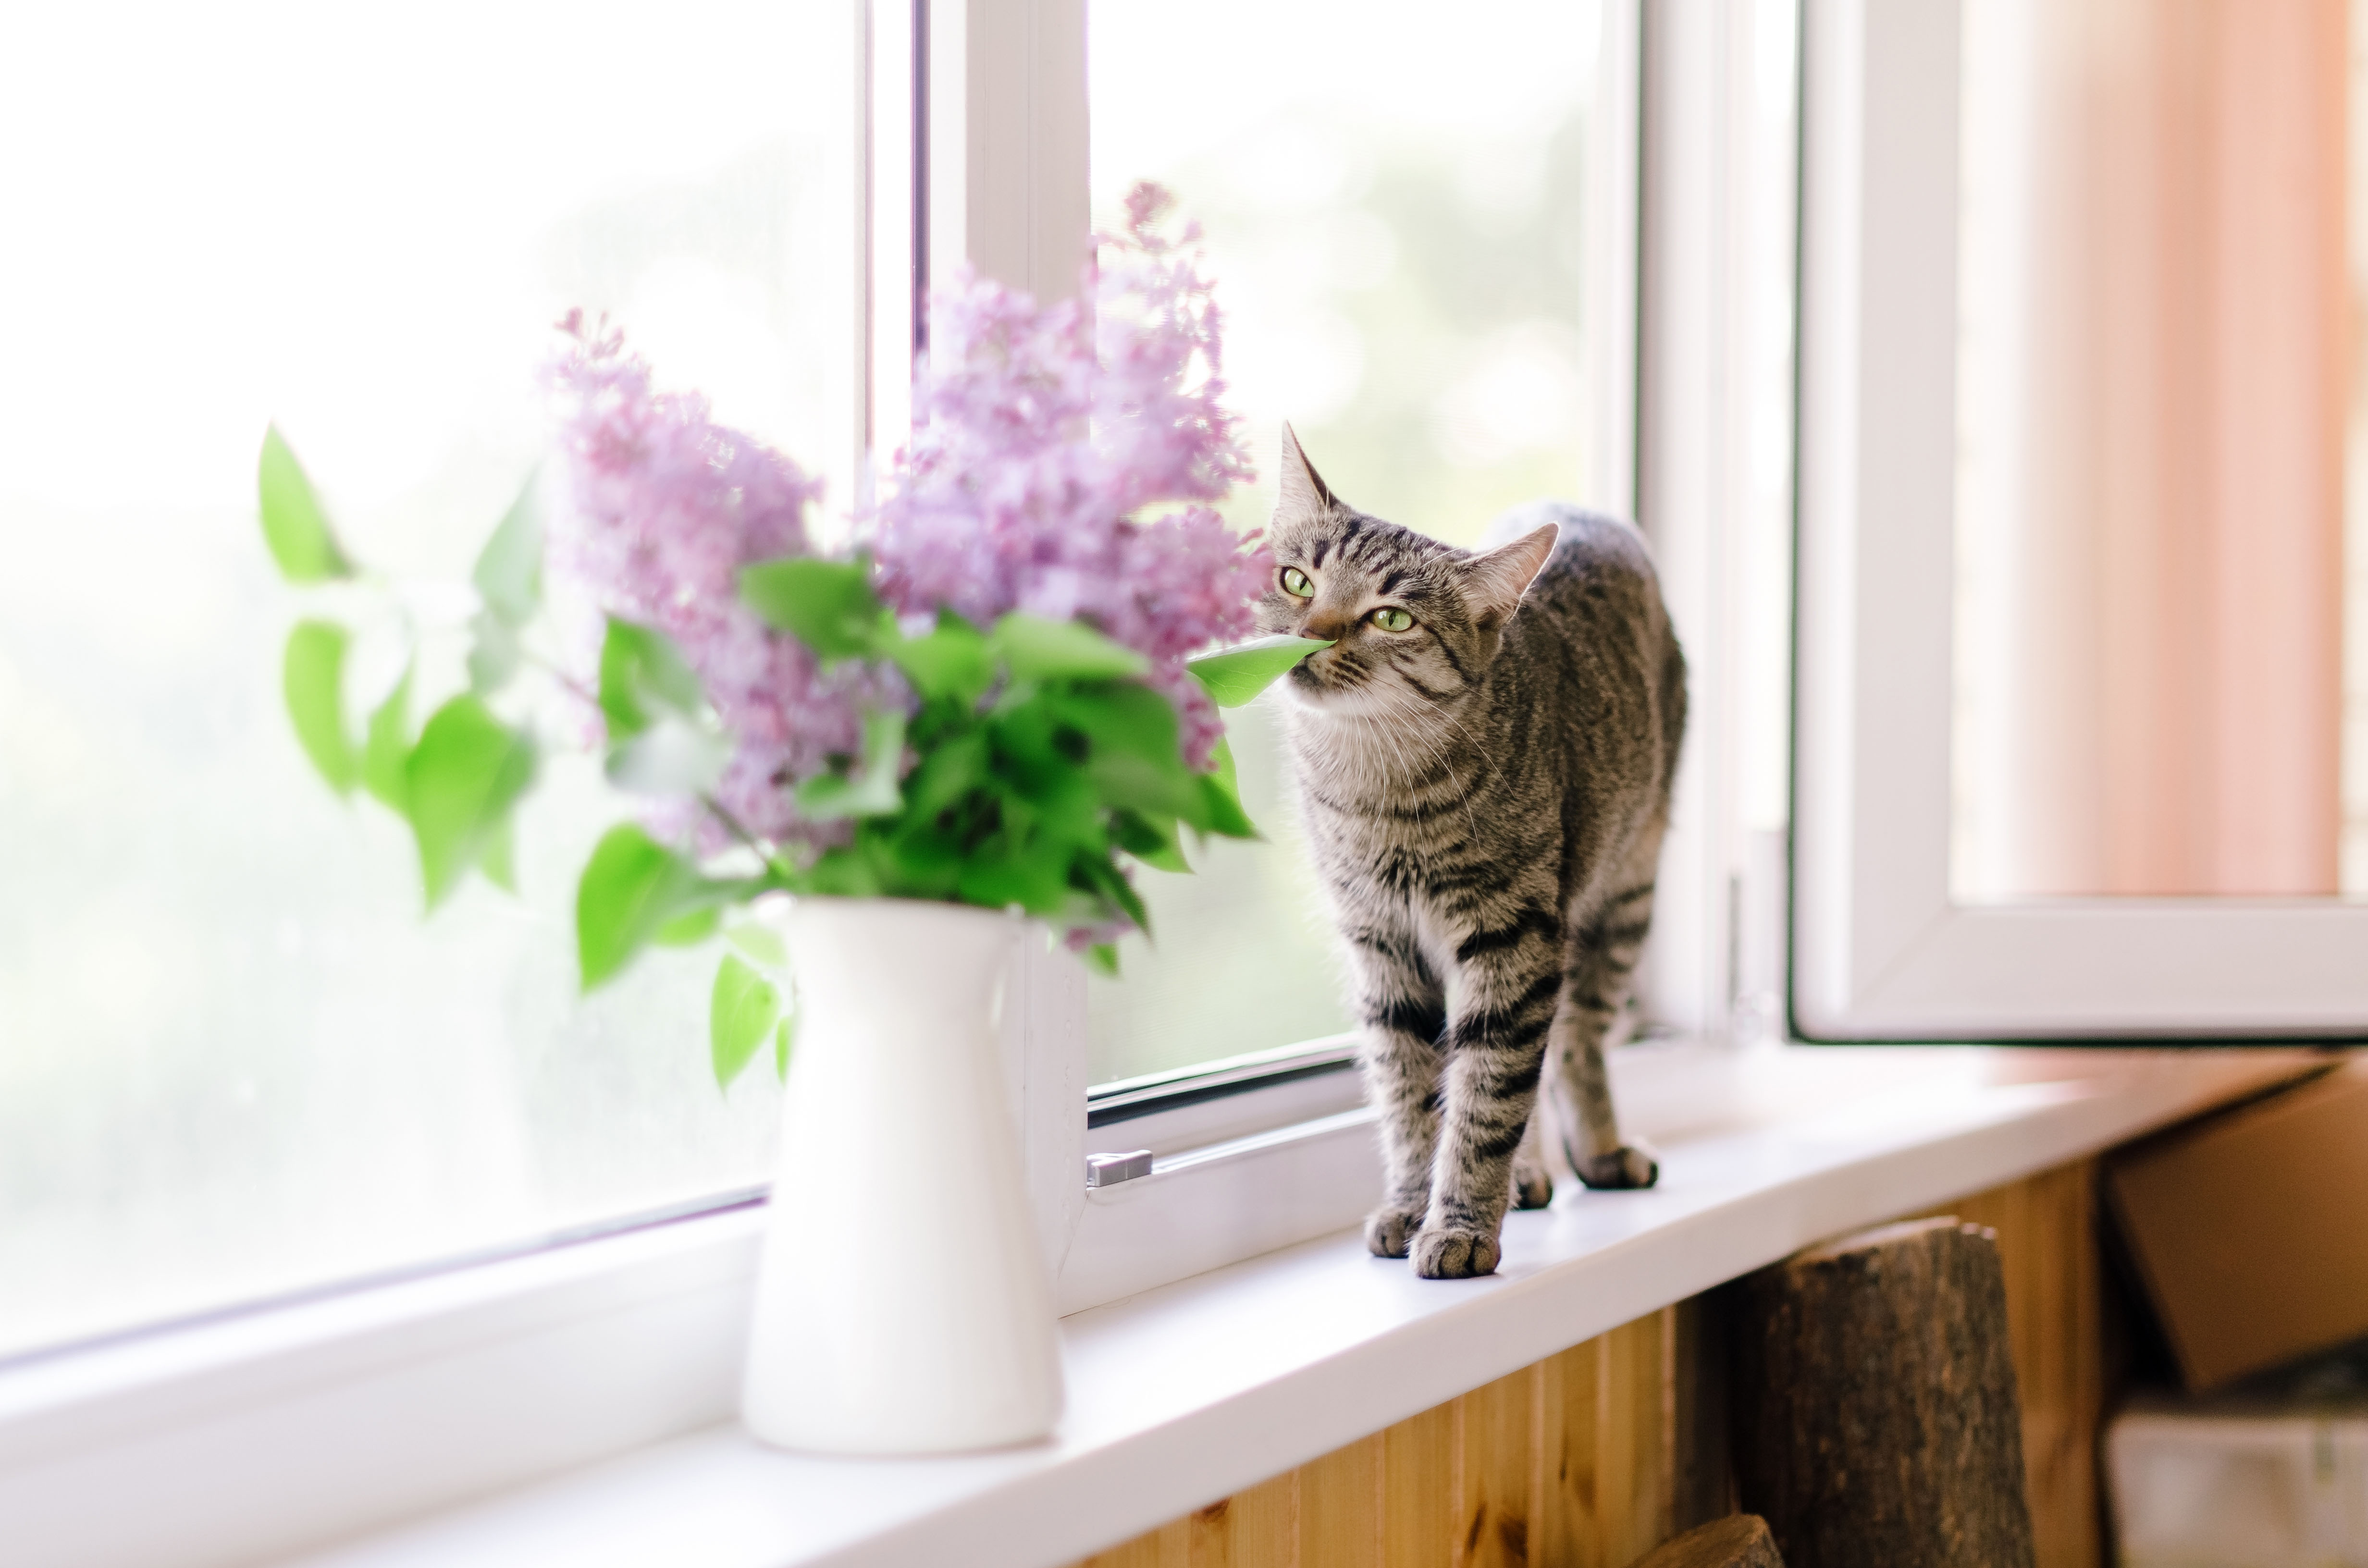 cat smelling lilacs window seal